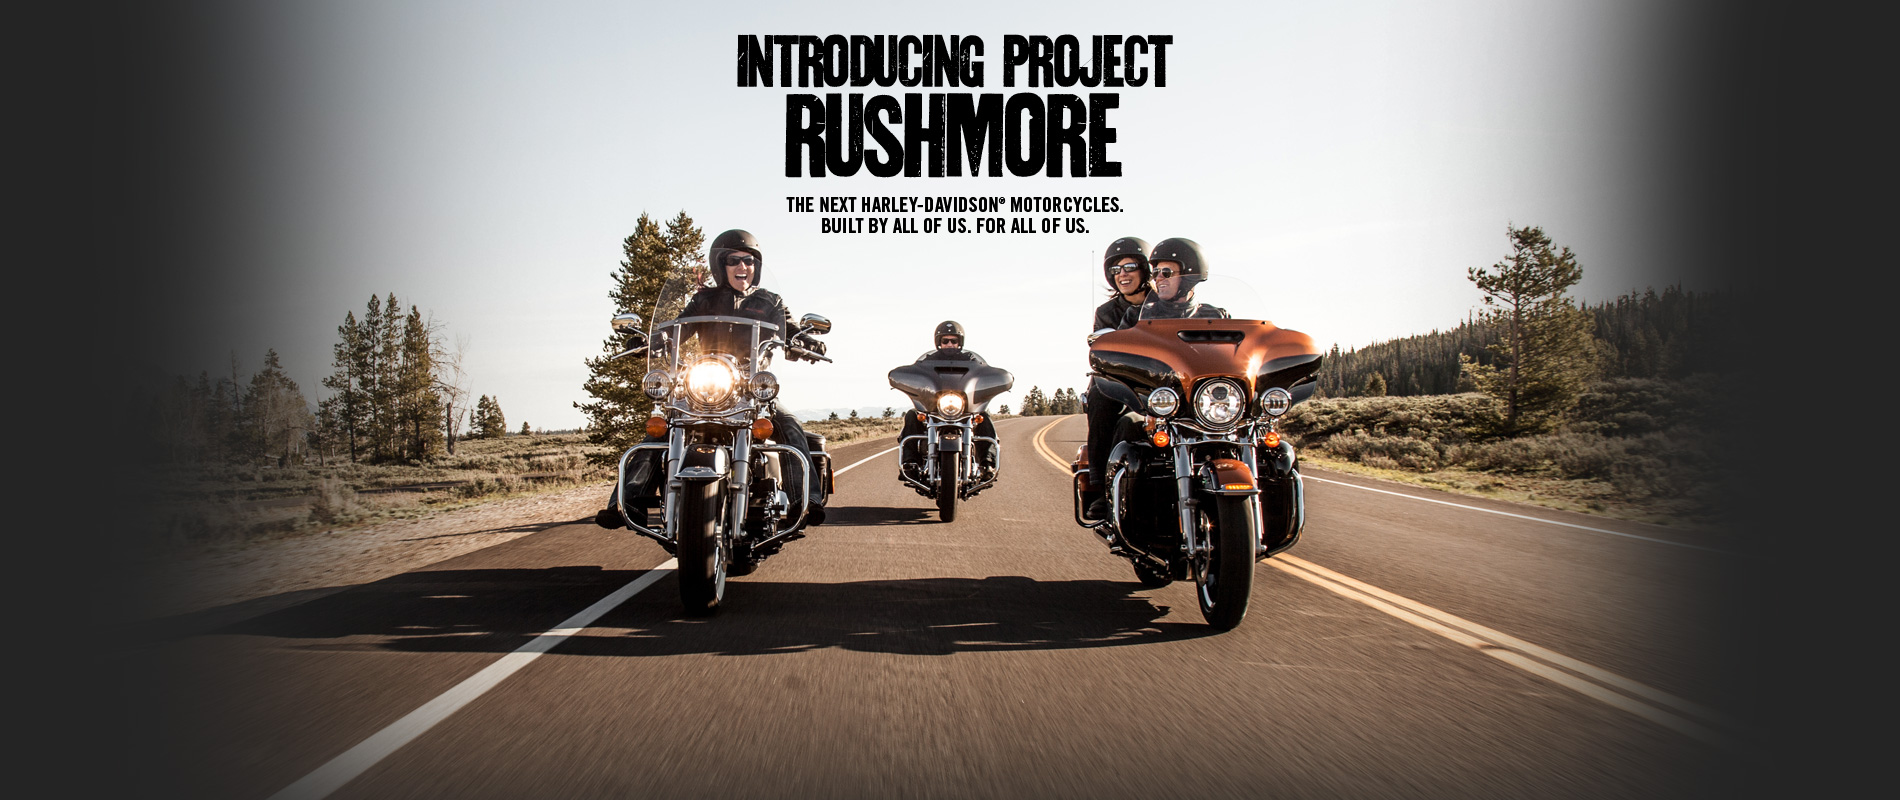 Harley rushmore Projection poster (1900 × 800)